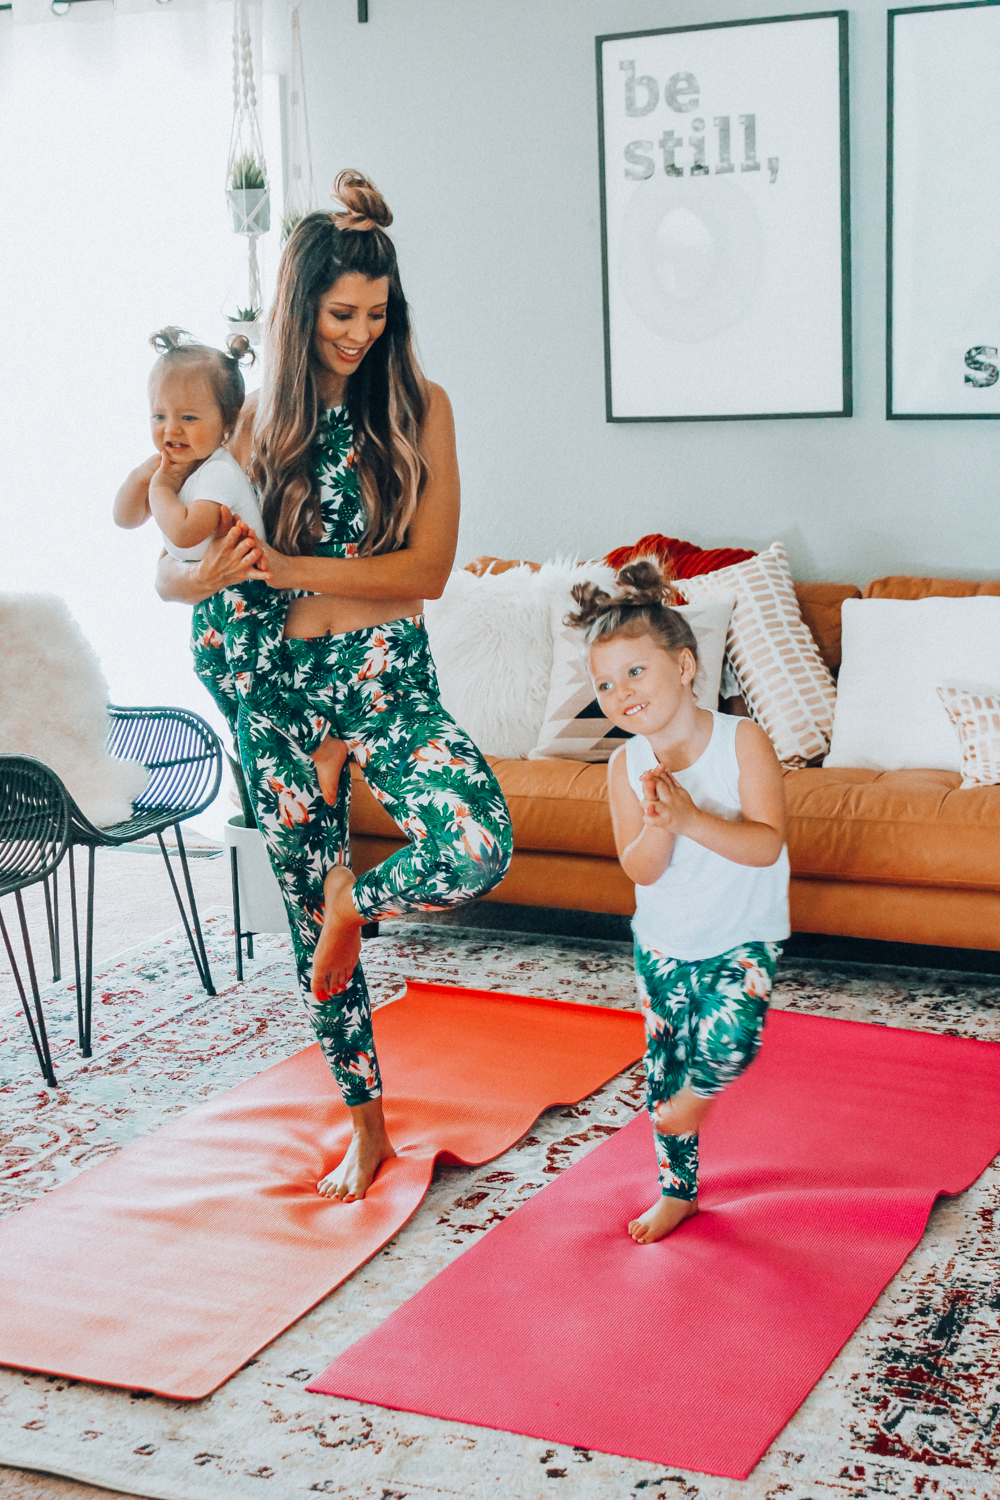 7b45bec29f0f5 3 Relaxation Tips for Moms + Matching Yoga Outfits by popular San Francisco  lifestyle blogger The ...